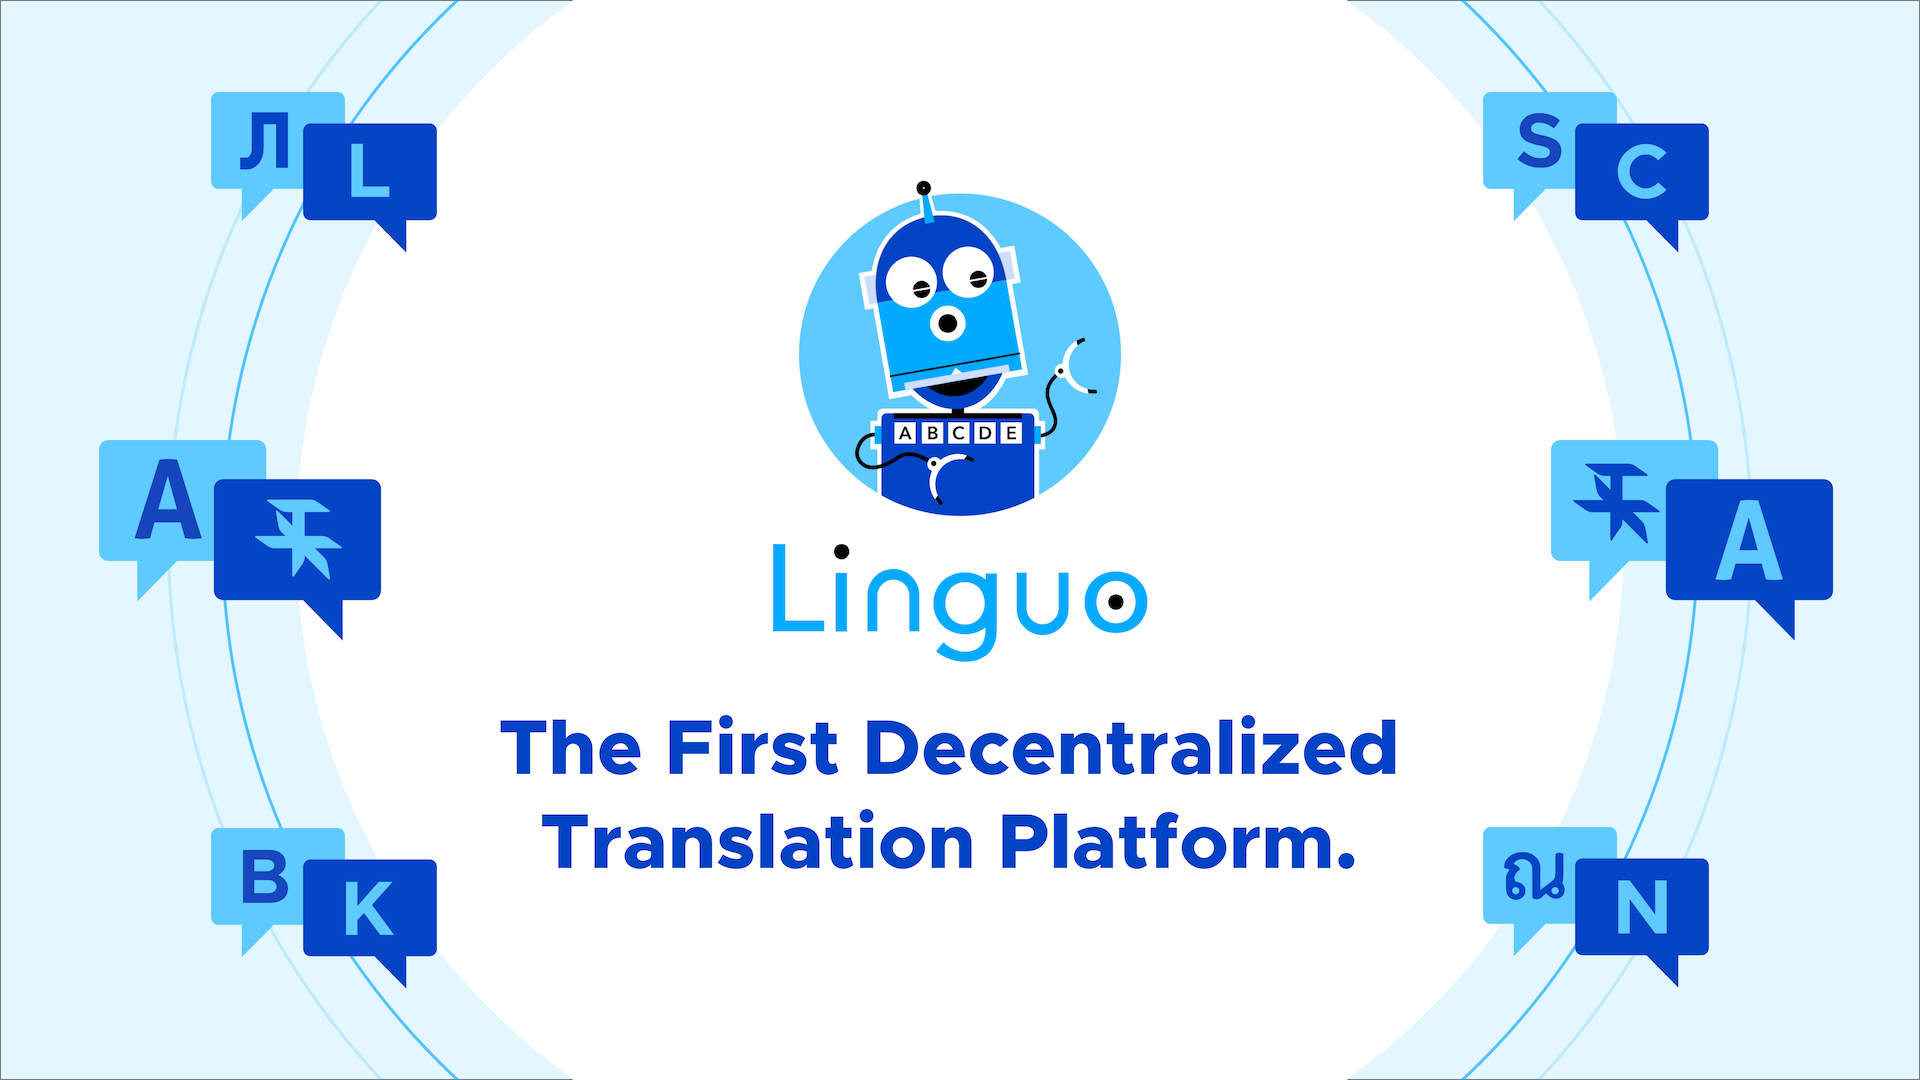 Linguo - The First Decentralized Translation Platform.